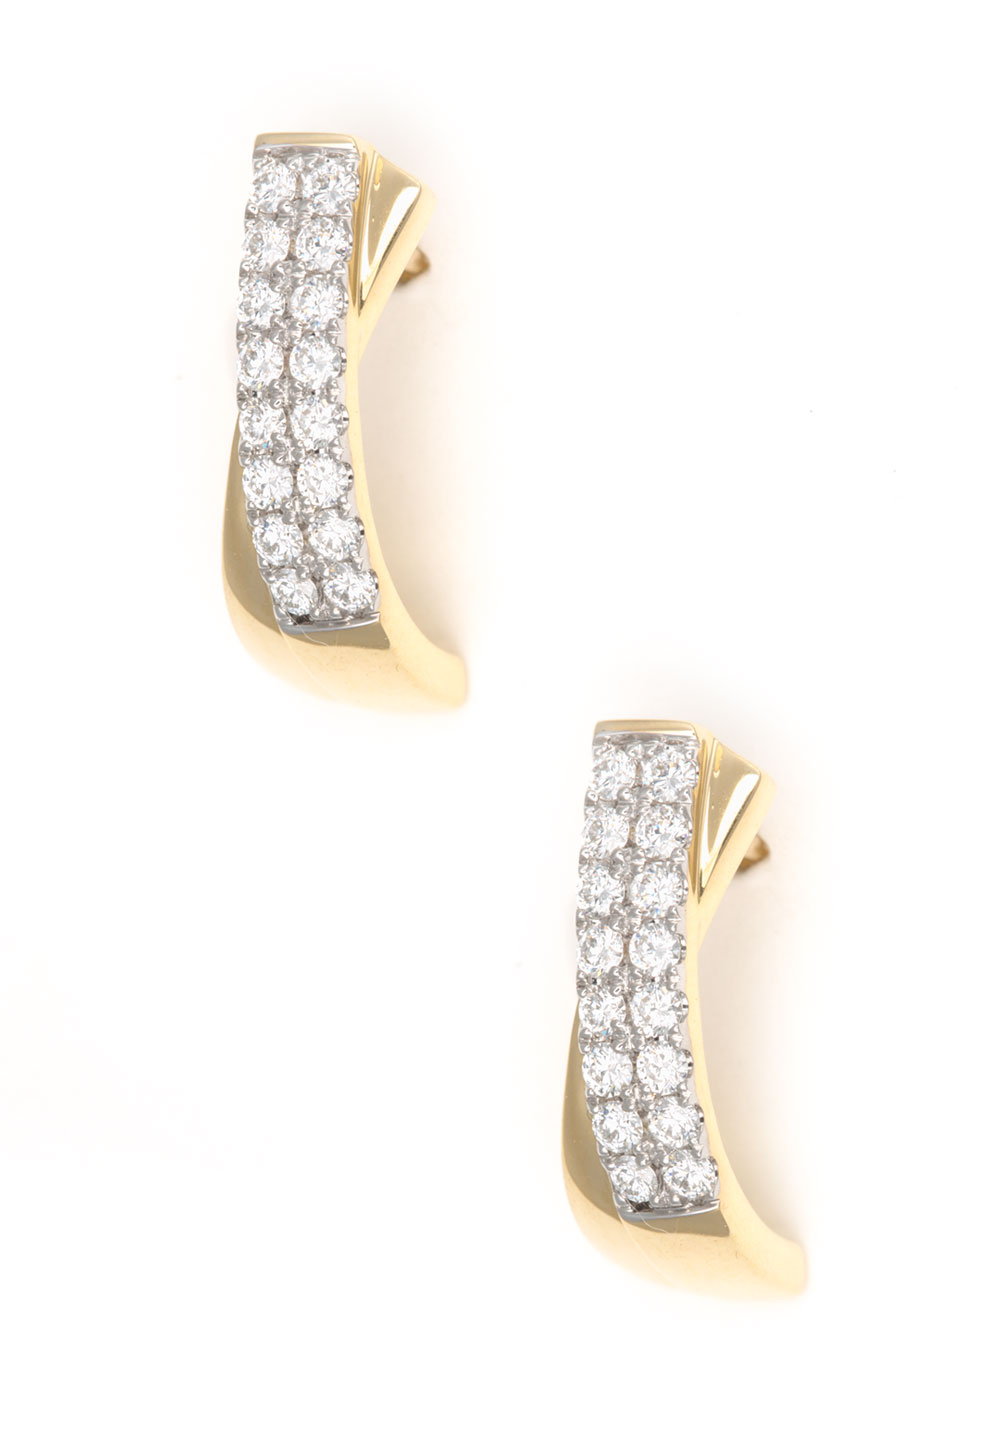 Pure Diamonds Ohrstecker, 750 Gelbgold, Brillant | Schmuck > Ohrschmuck & Ohrringe > Ohrstecker | Gold | Pure Diamonds